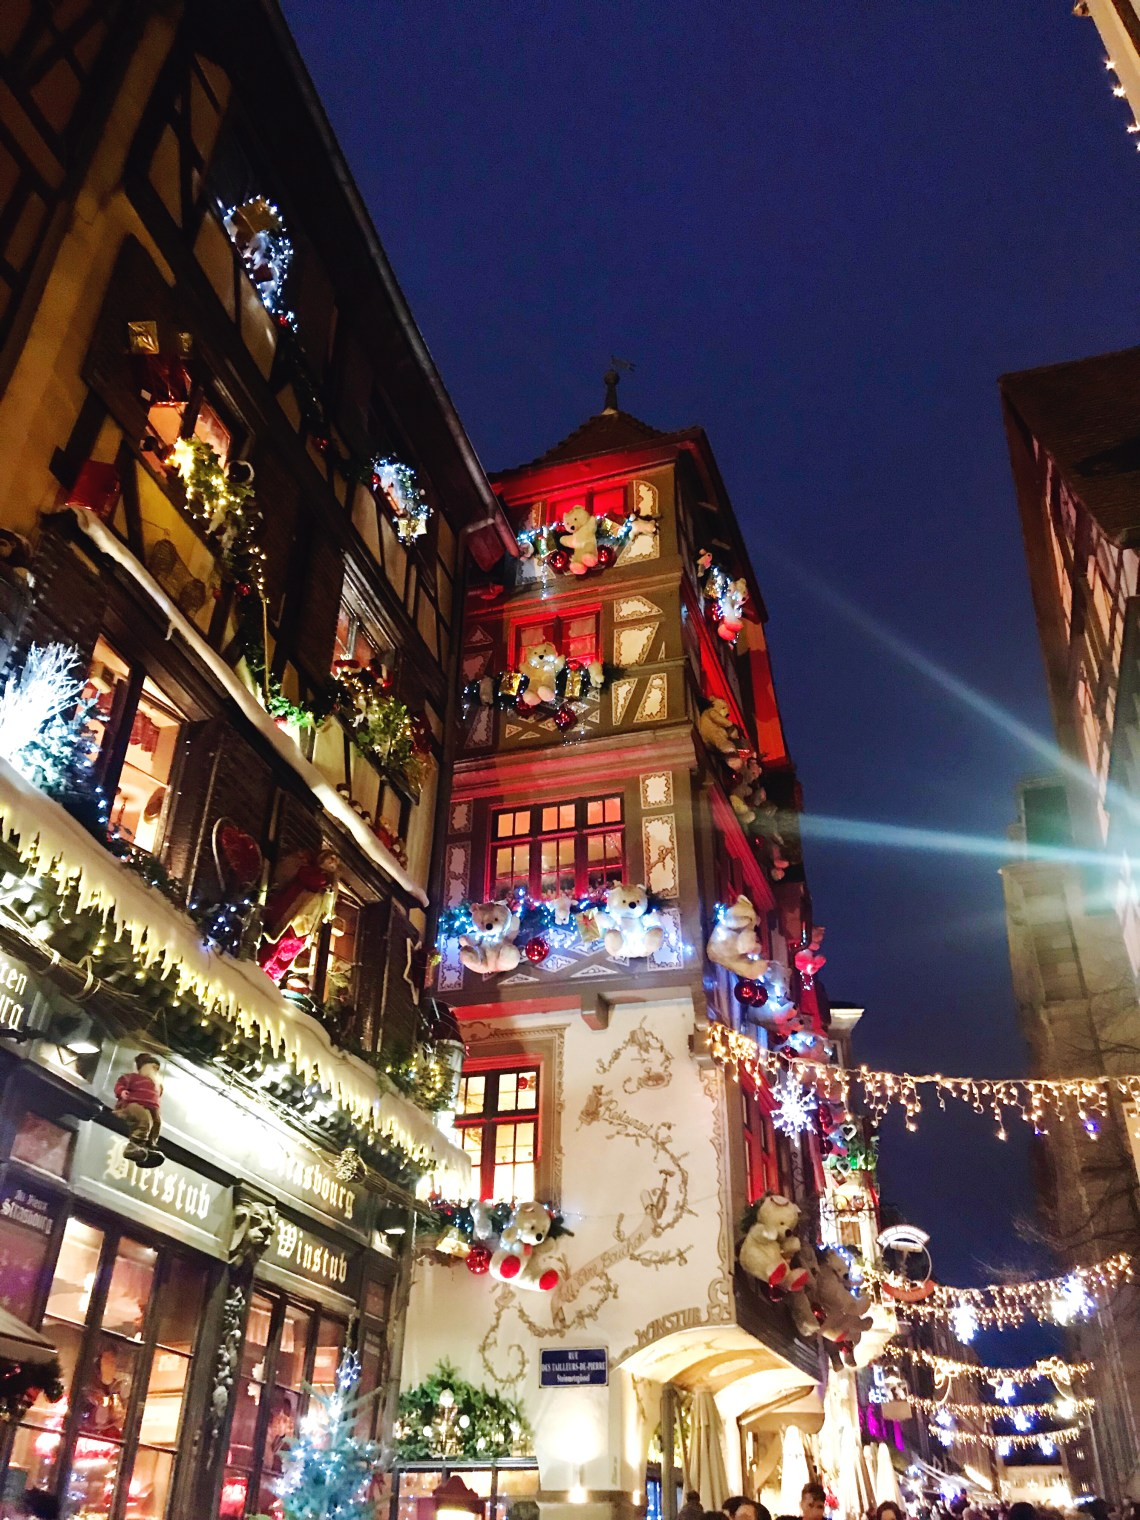 Christmas decorations in Strasbourg at night